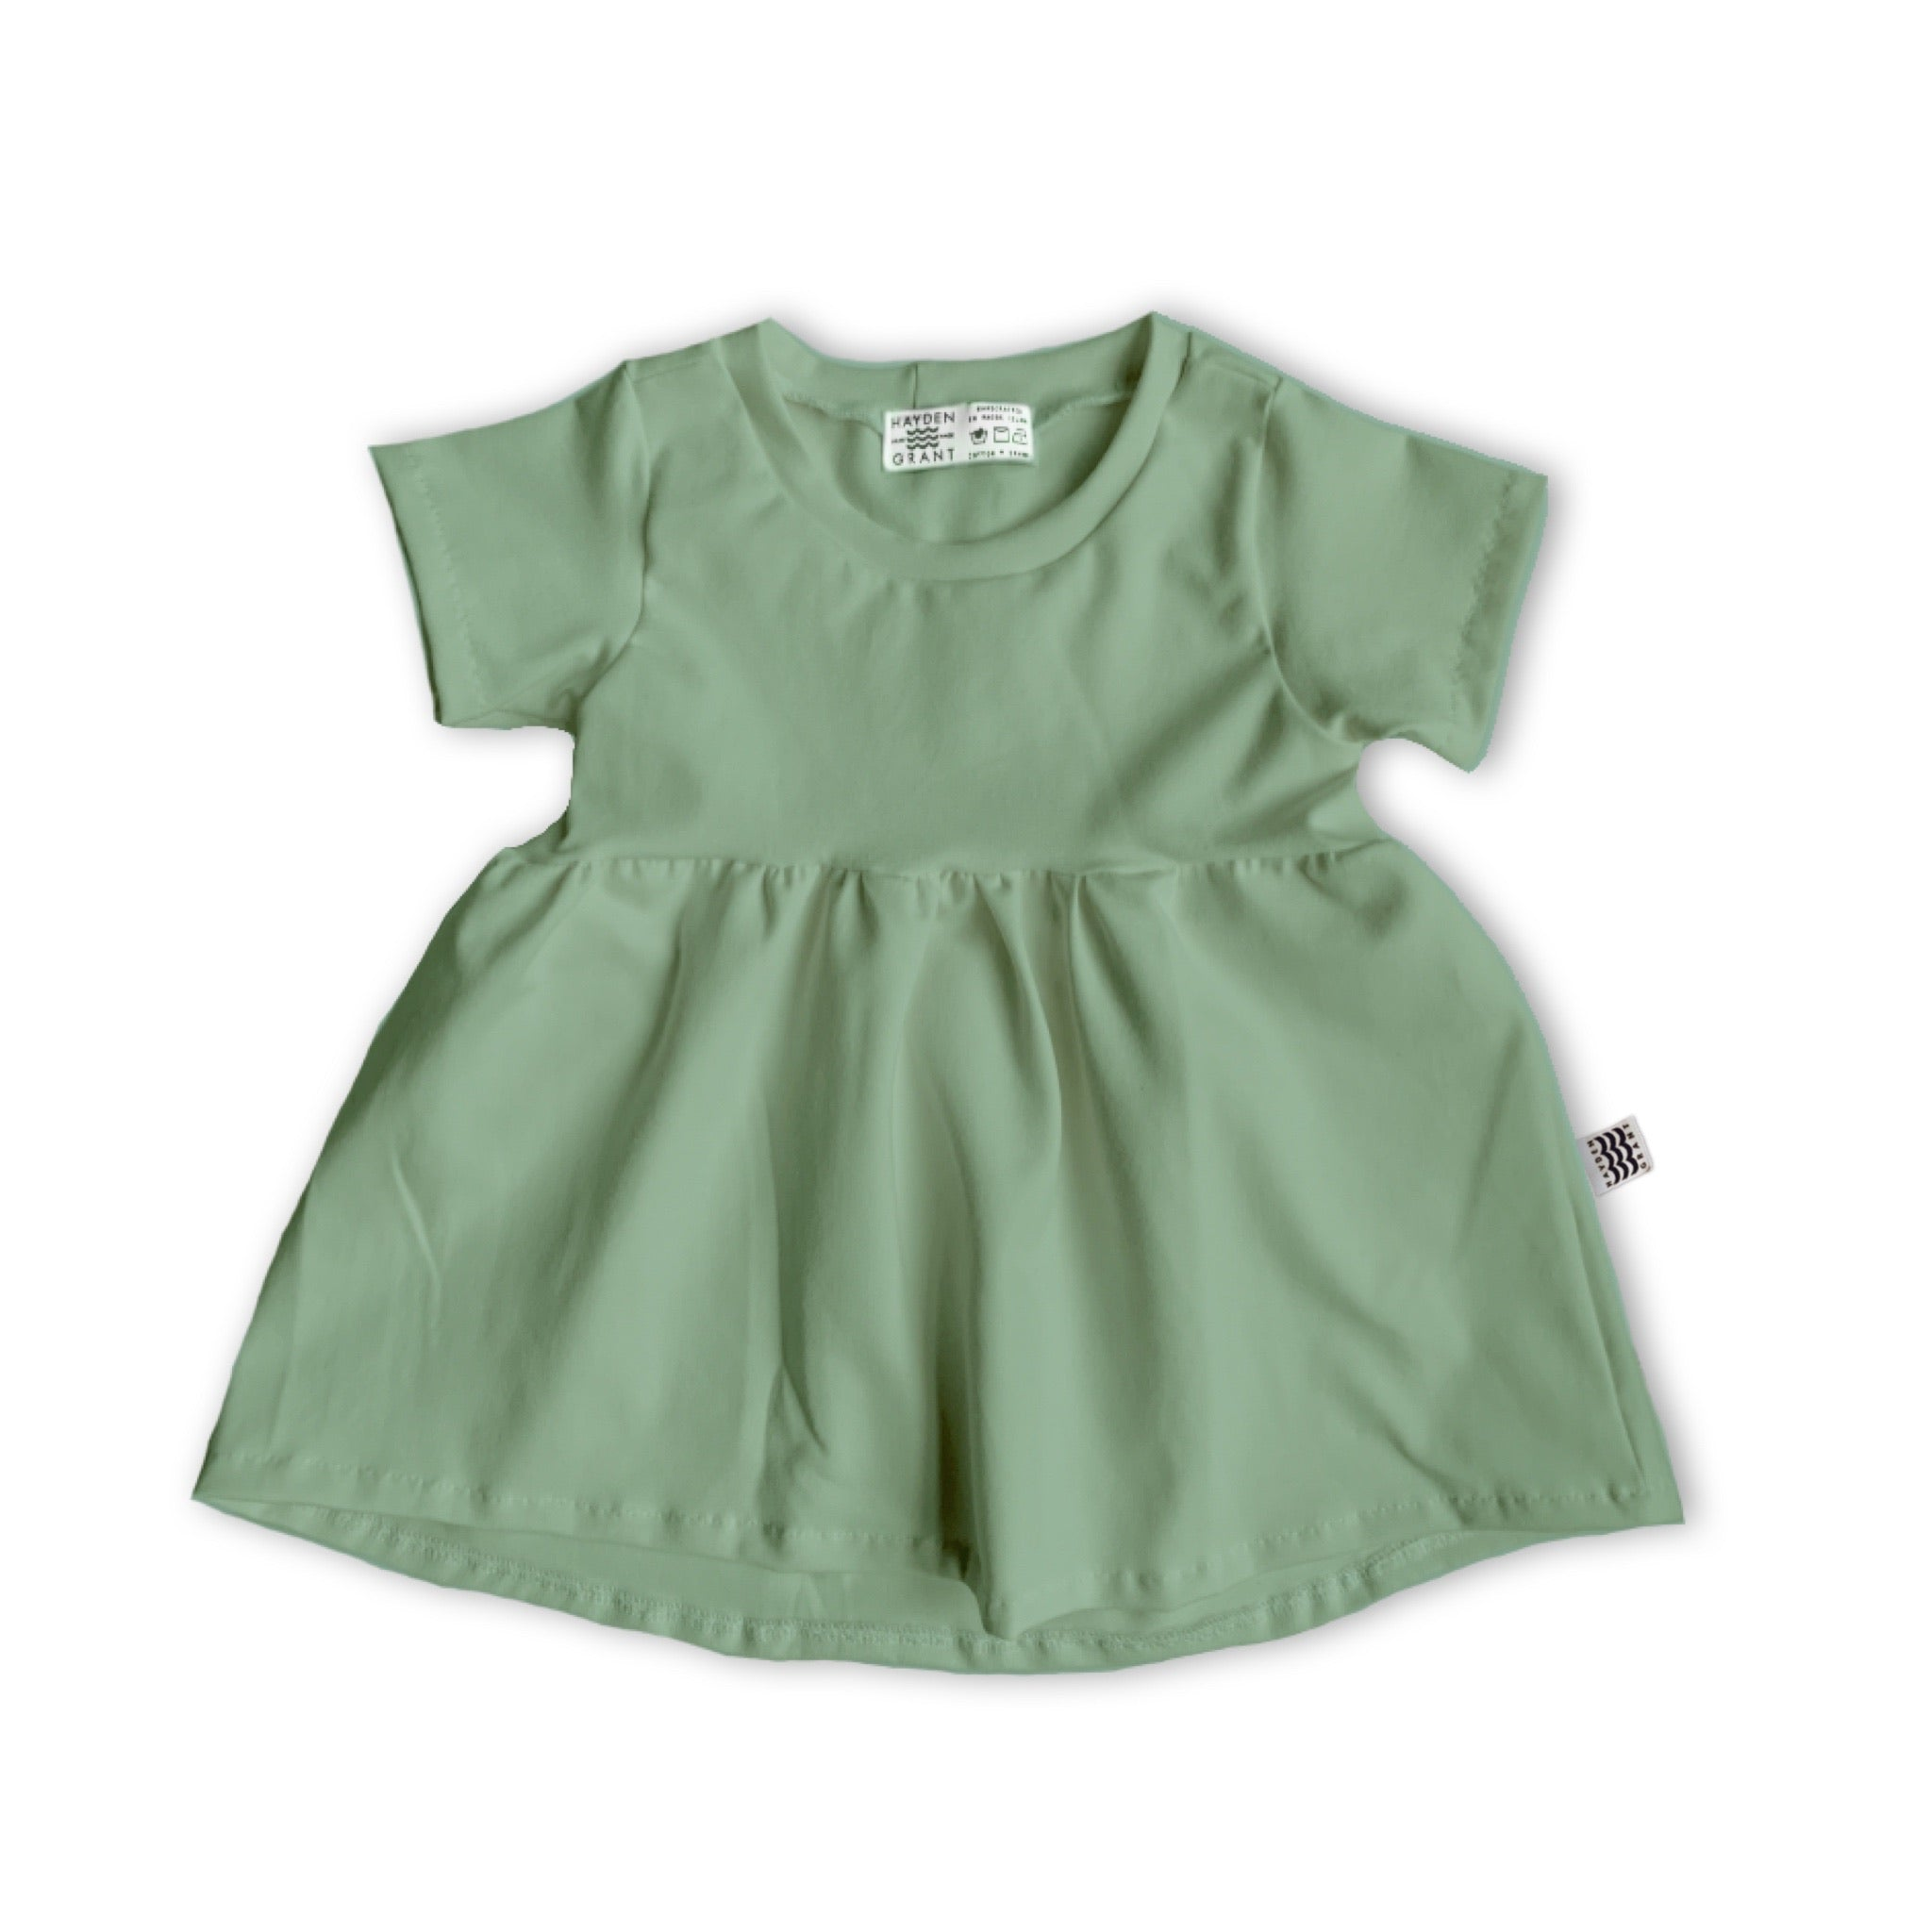 Handcrafted Peplum Tee in Green Tea (choice of sleeve length)